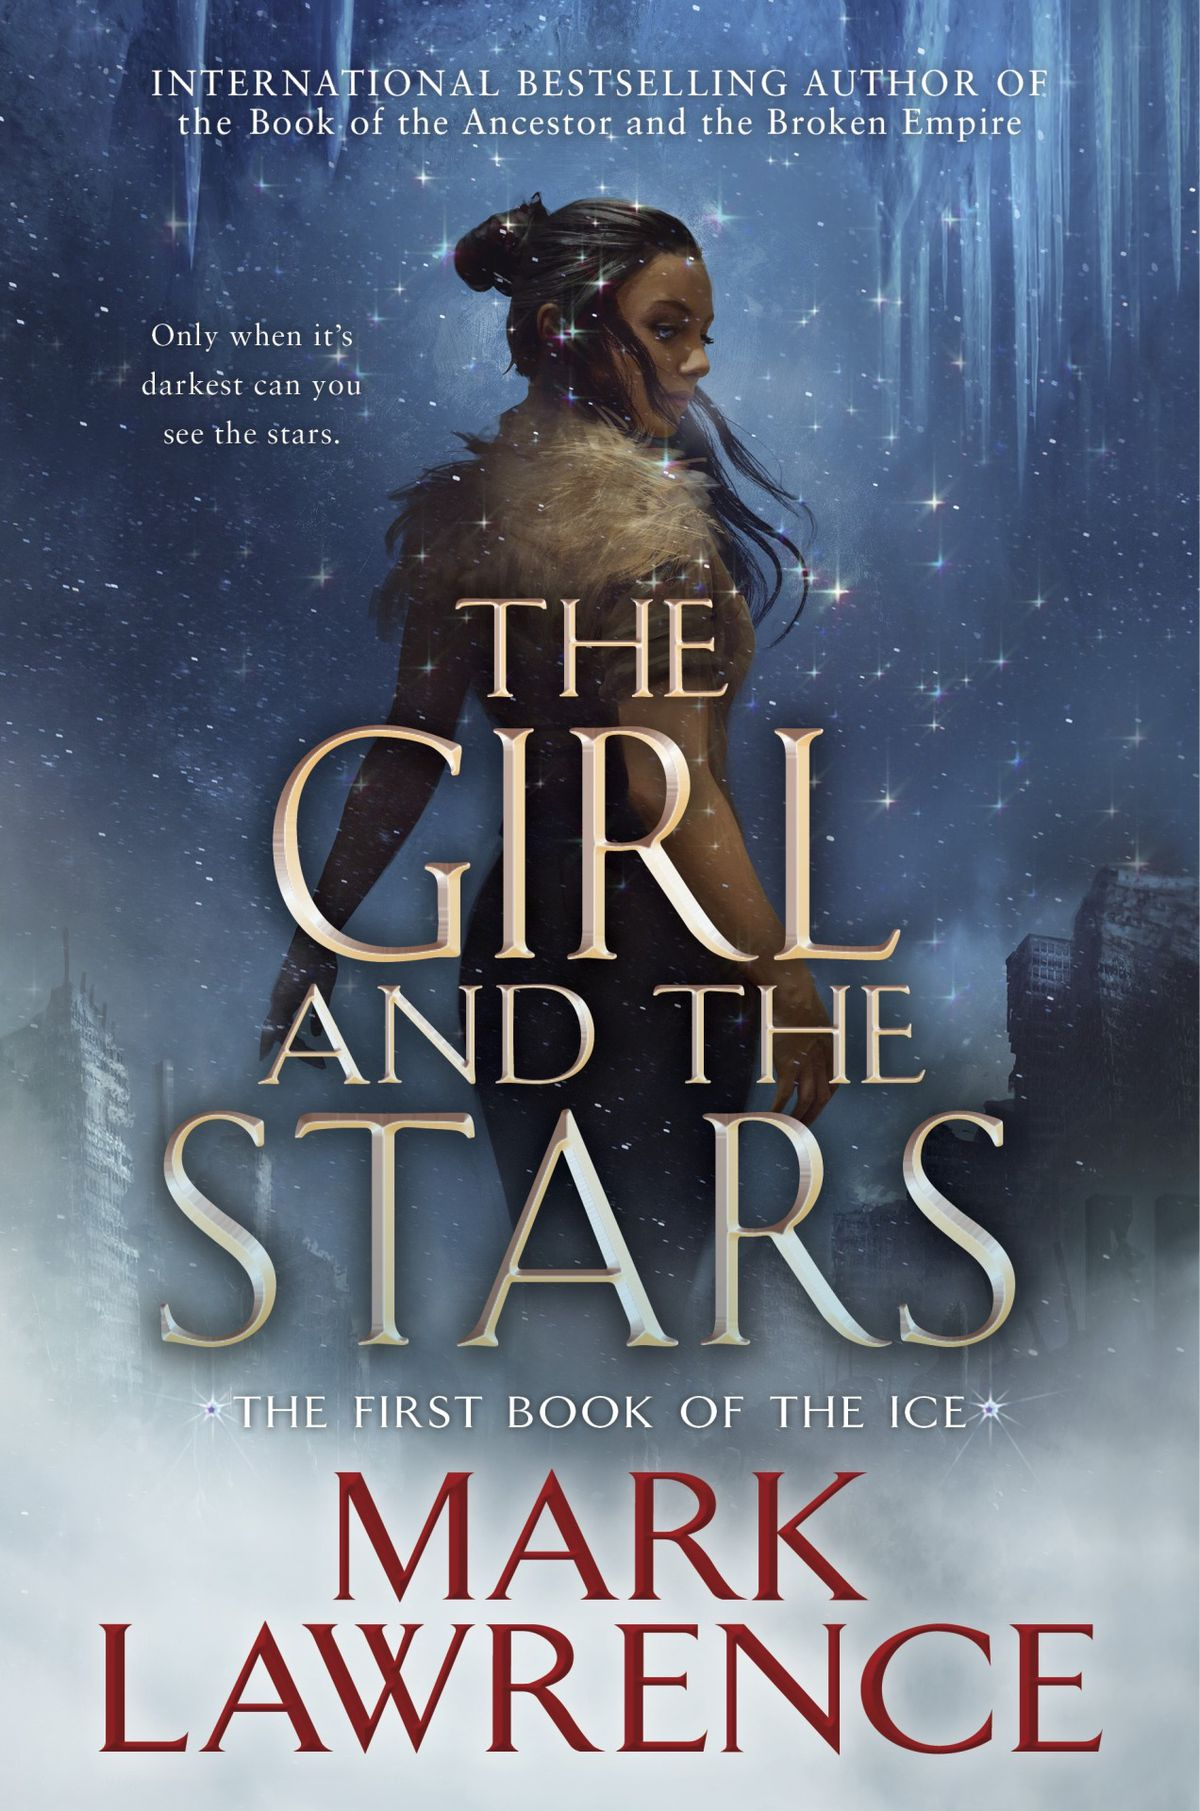 the girl and the stars: a black woman looks over her shoulder